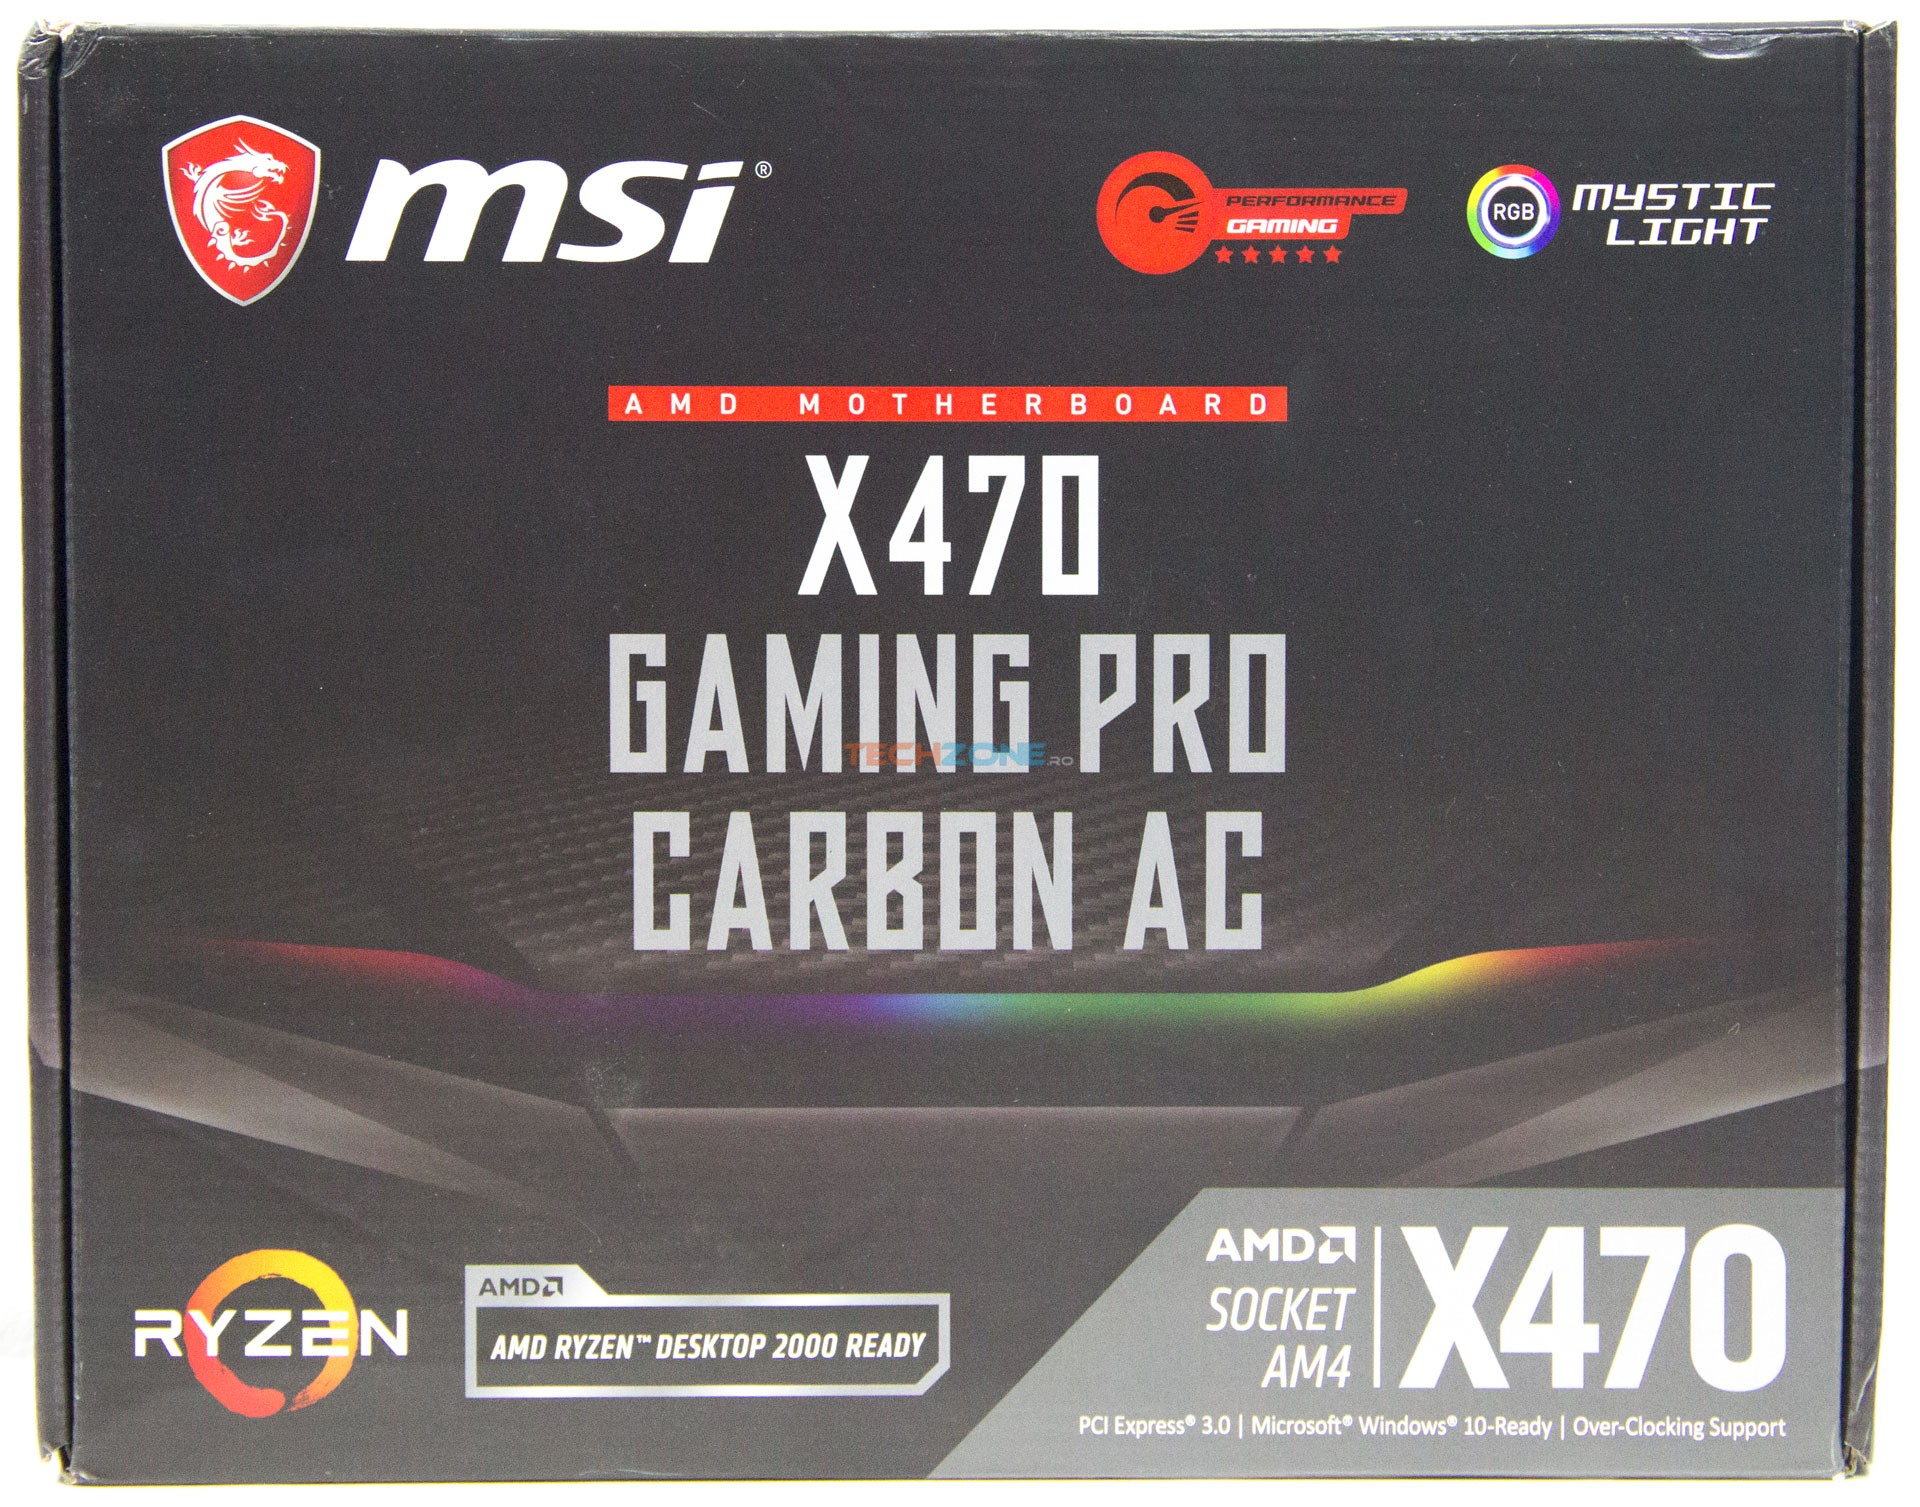 MSI X470 Gaming Pro Carbon AC box